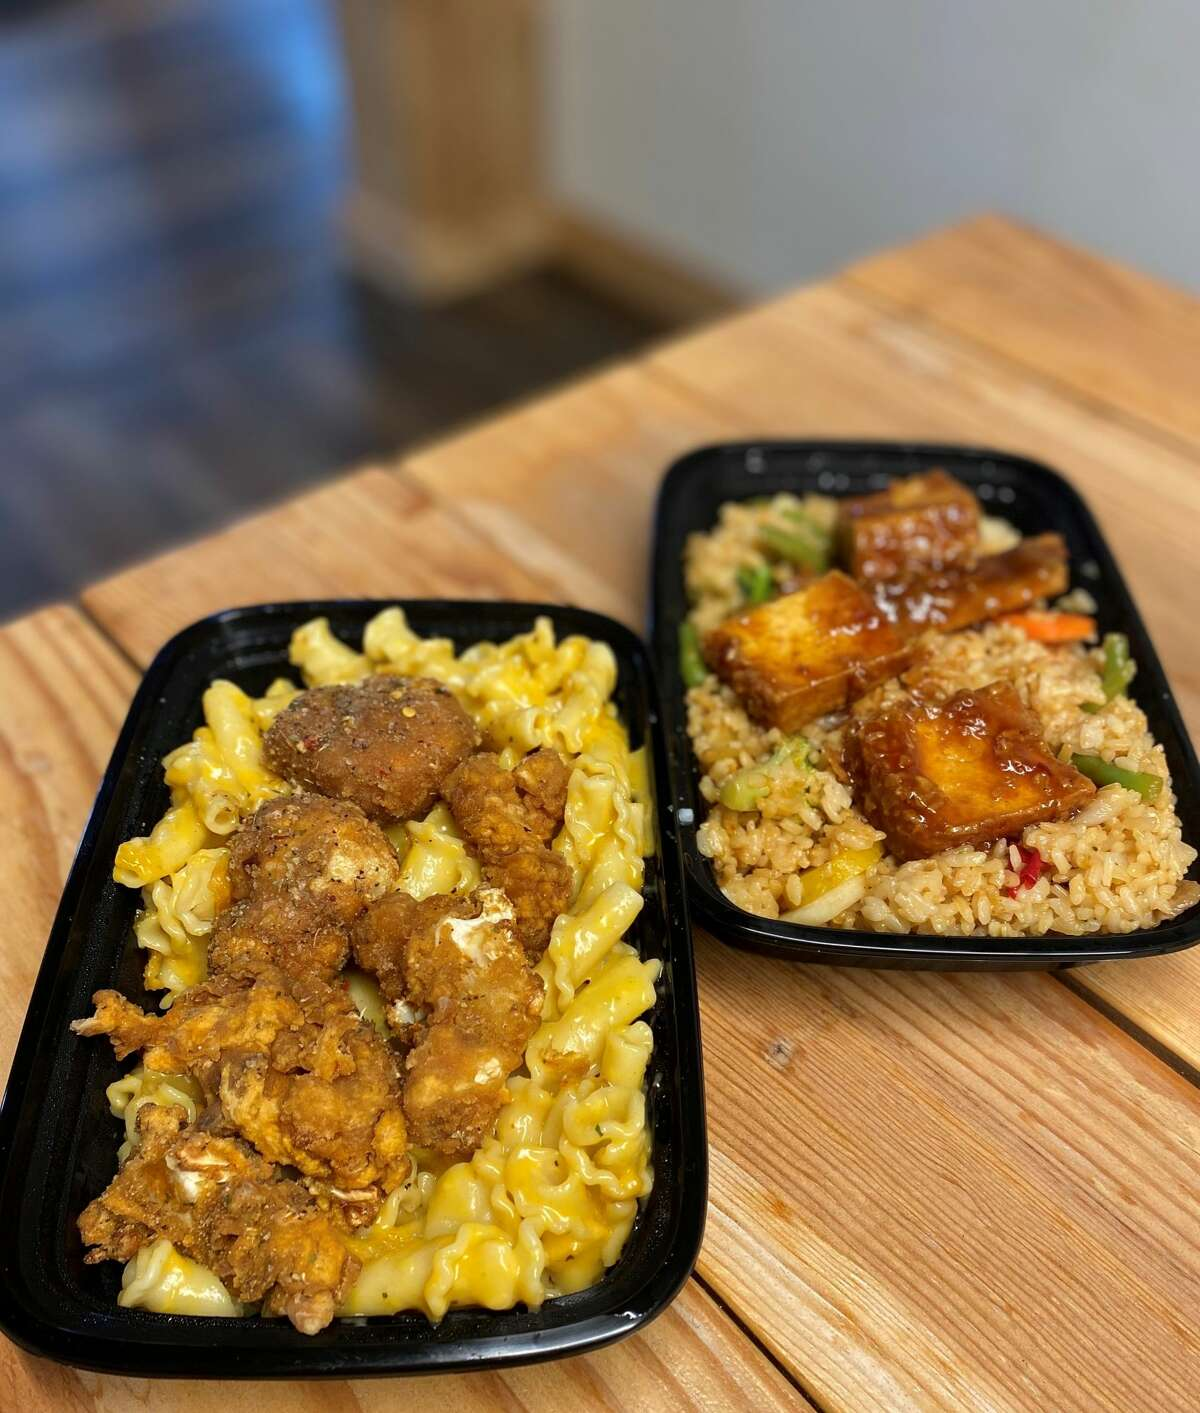 Mac and cheez with fried cauliflower, left, and vegetable fried rice with General Tso's tofu.